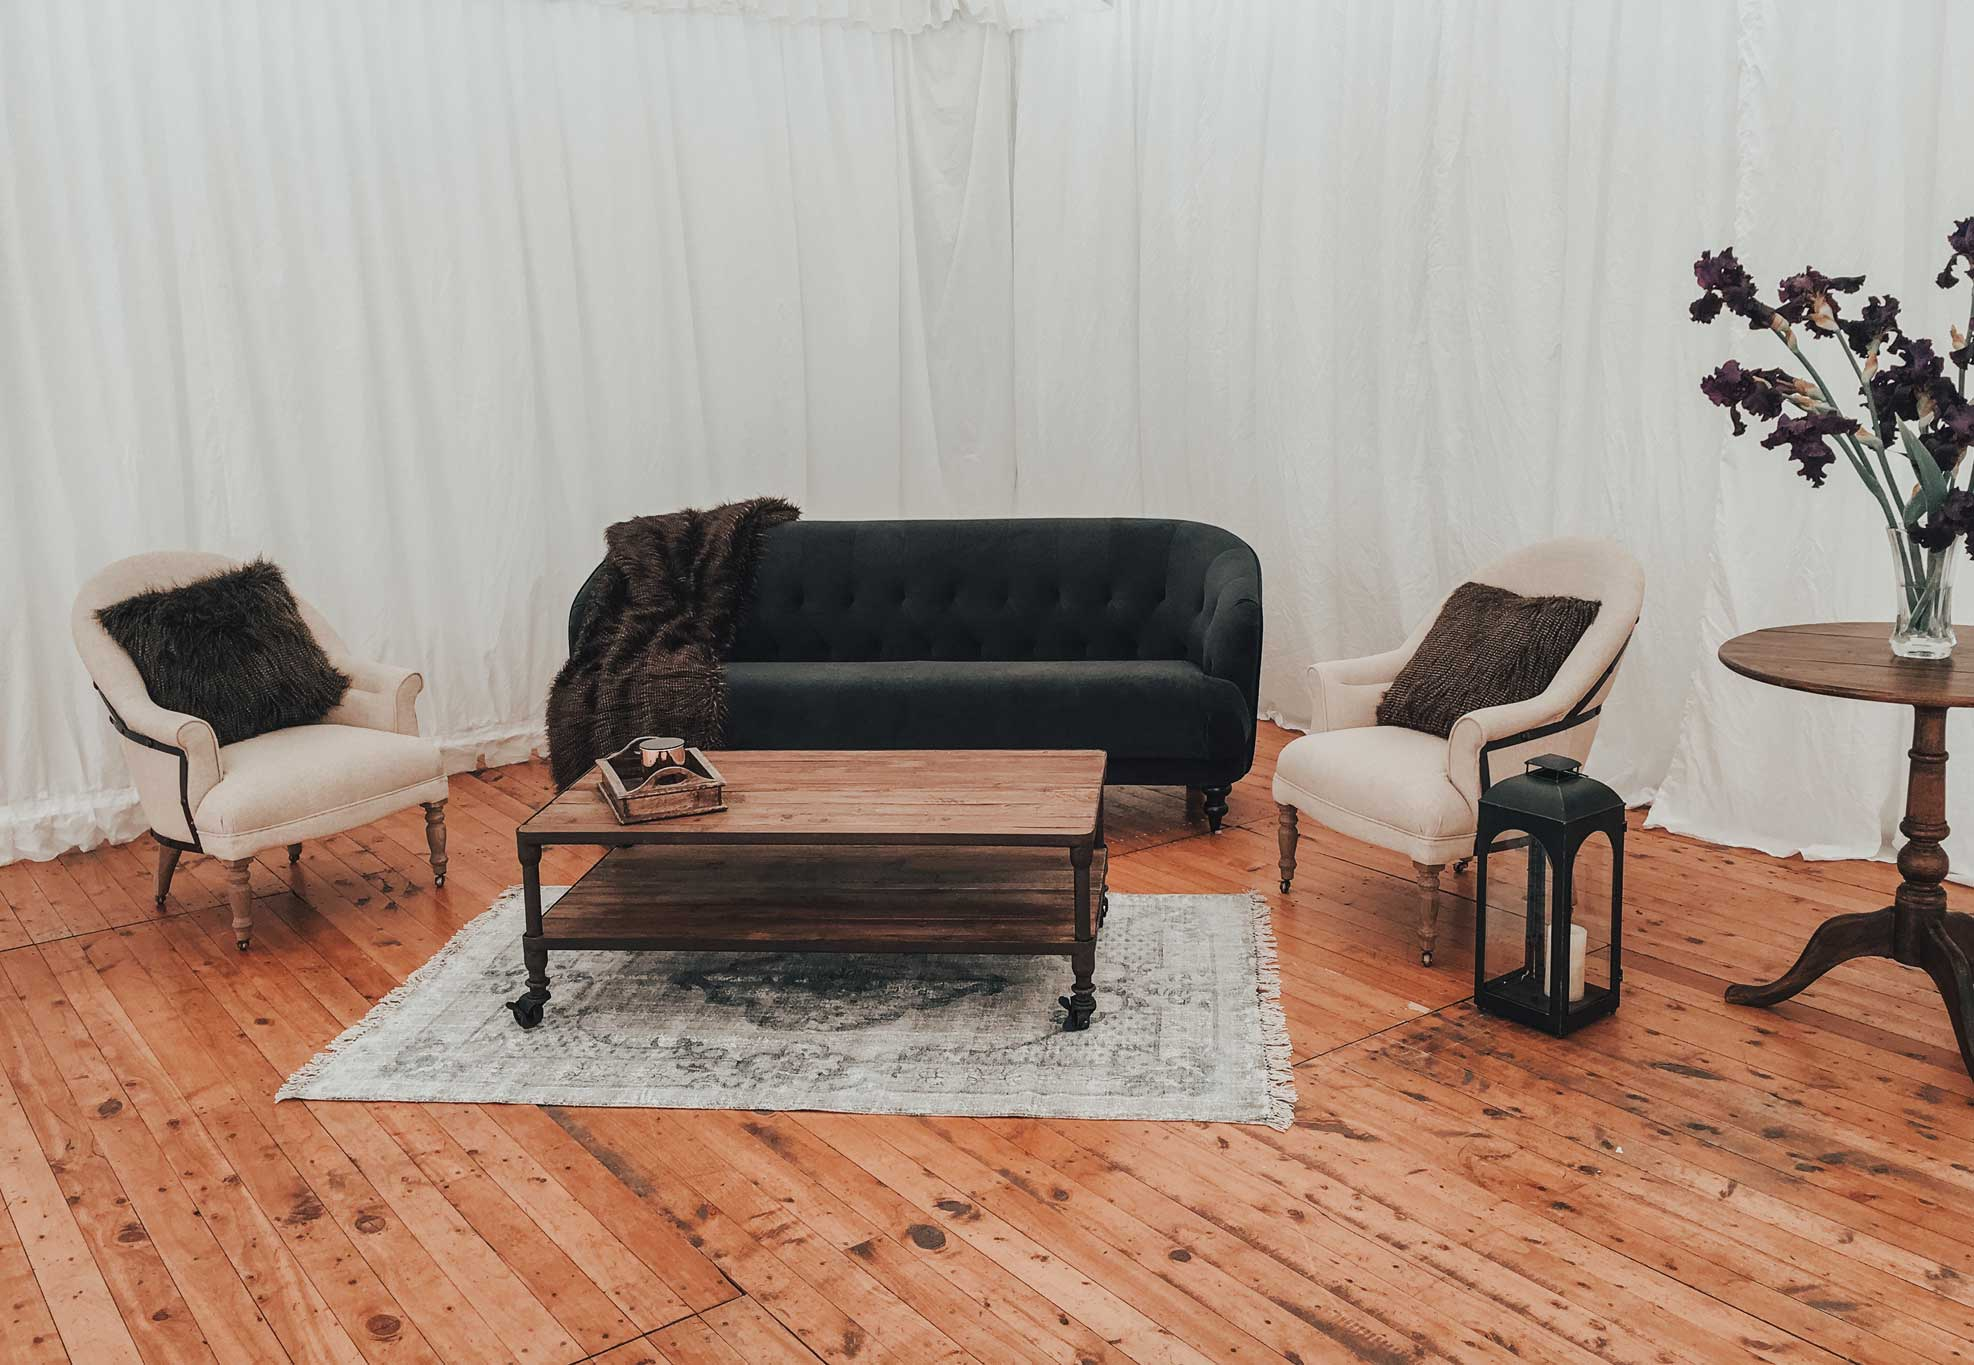 silk-estate-marquee-weddings-and-events-styling-and-hire-furniture-lounge-4